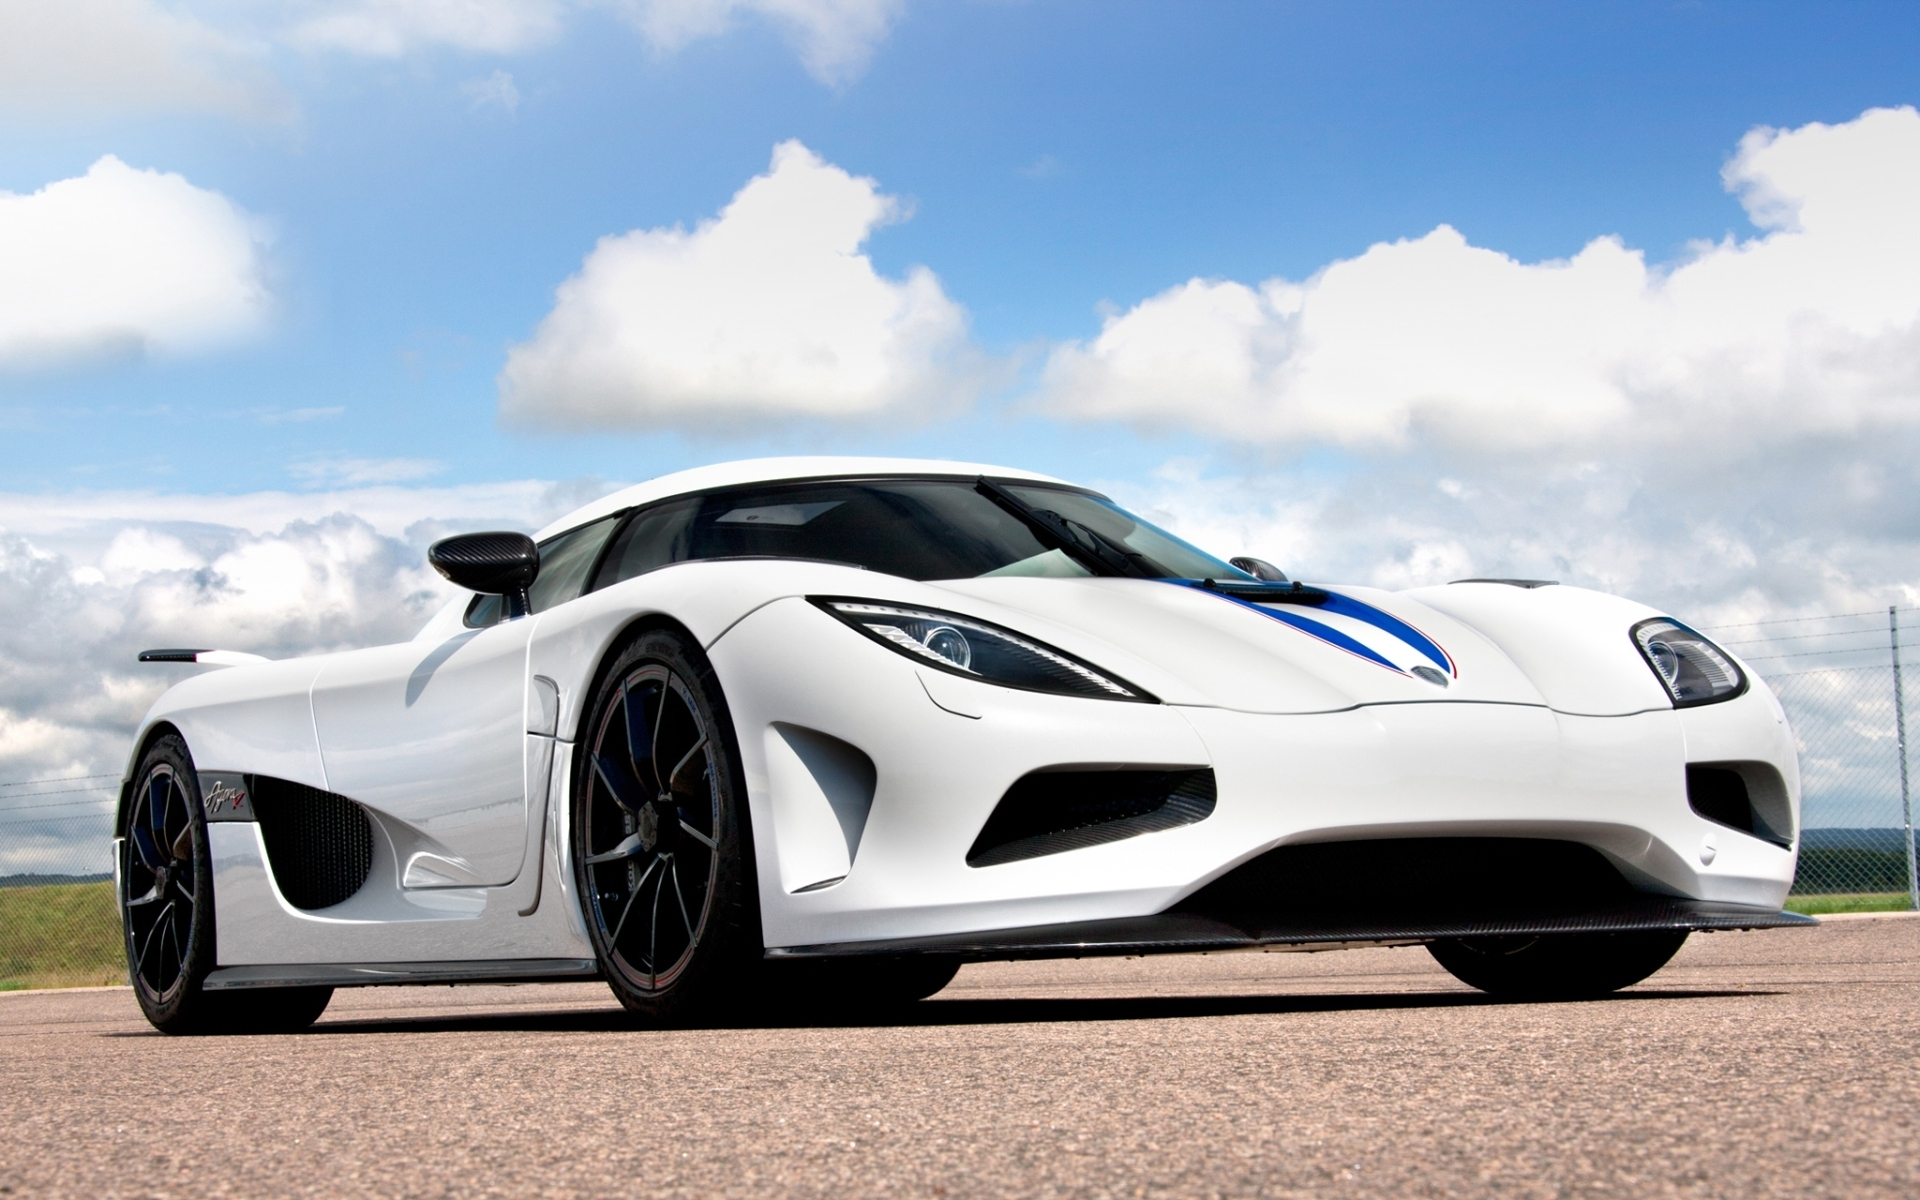 103 Koenigsegg Wallpapers | Koenigsegg Backgrounds